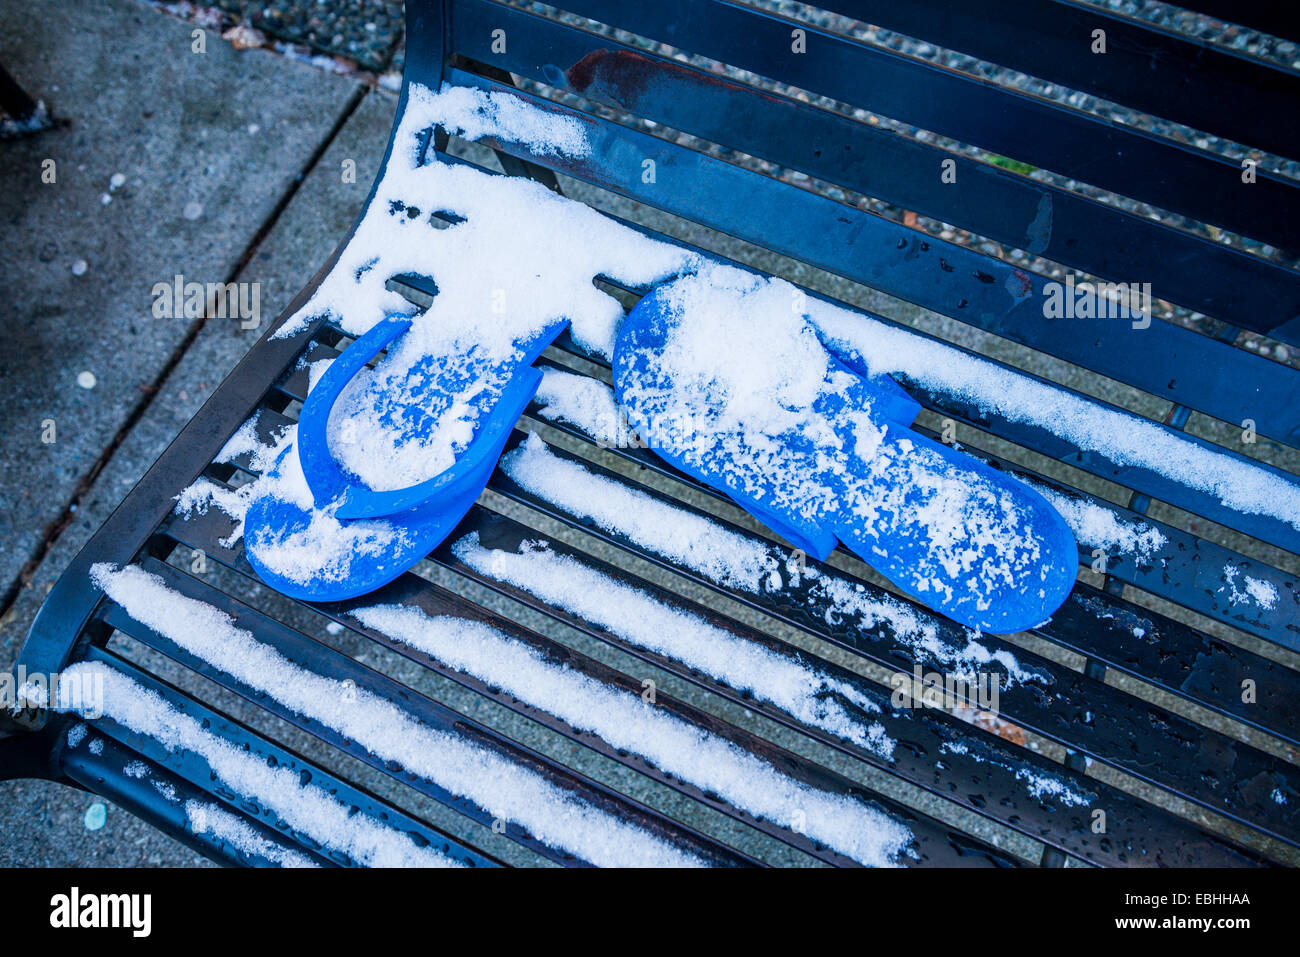 Flip flop sandals left behind on bench with snow. - Stock Image